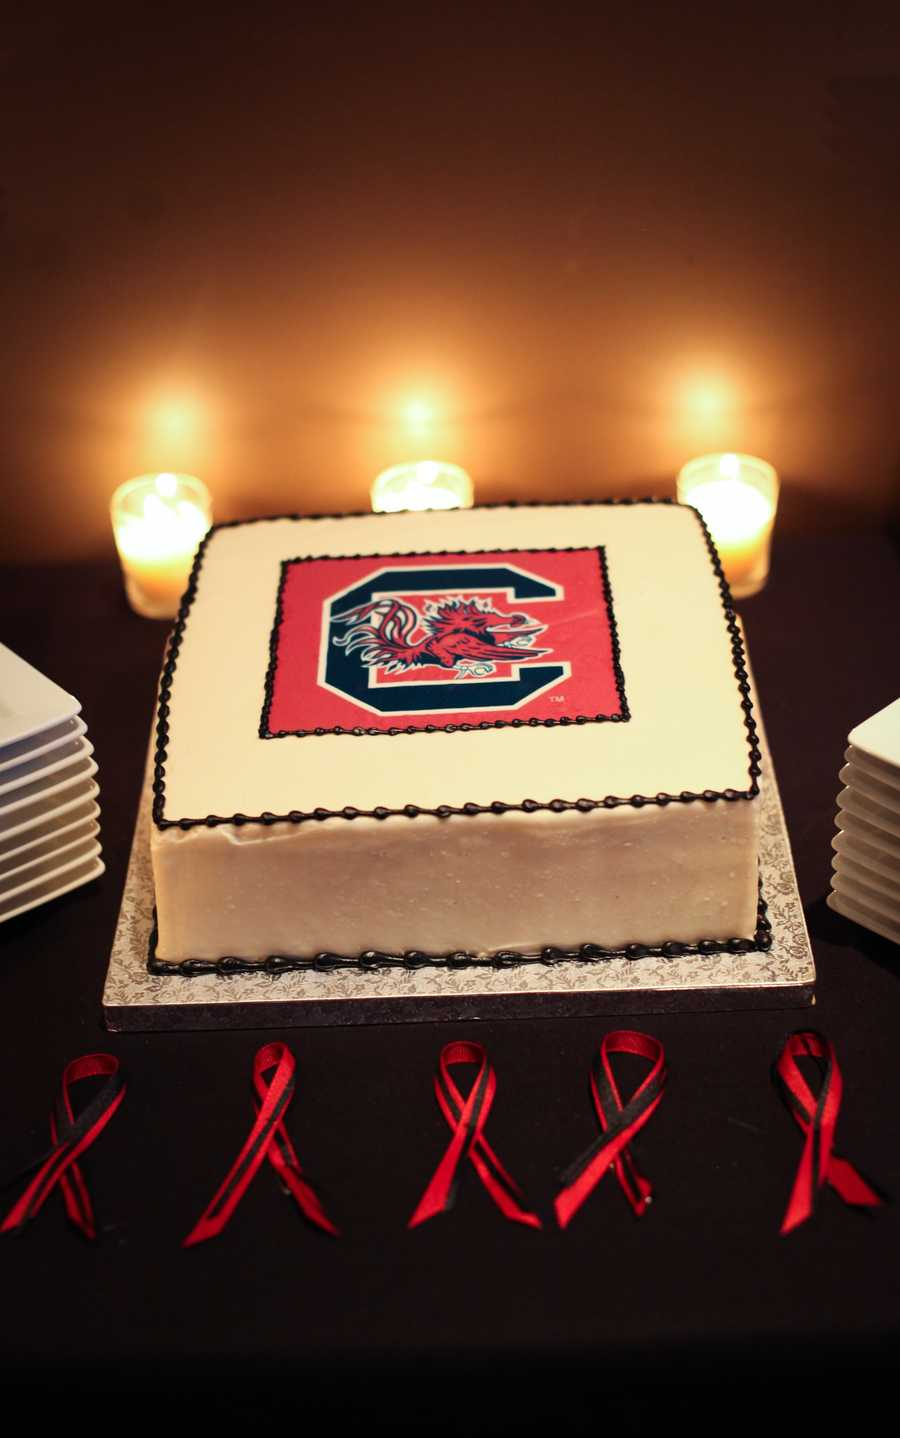 The groomsman cake or the wedding cake can have the logo of your favorite sports team.